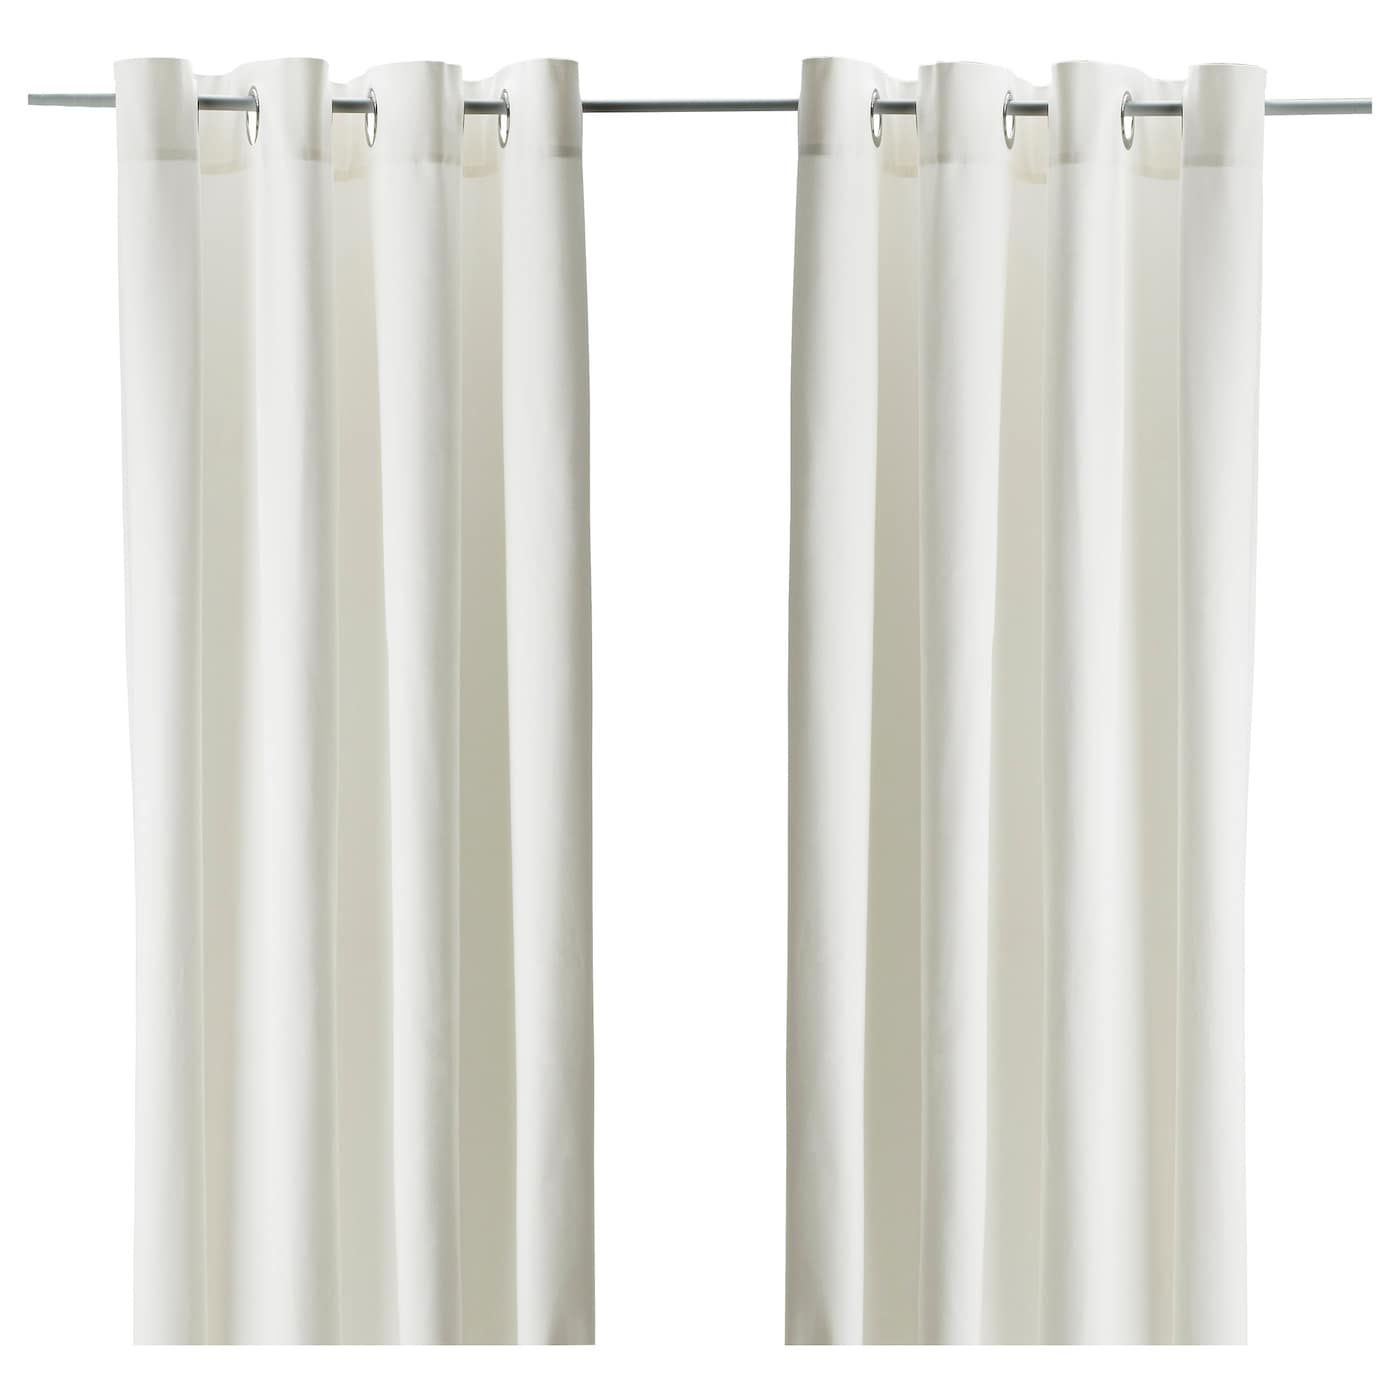 Merete Room Darkening Curtains 1 Pair Bleached White 57x98 Ikea Affordable Curtains Curtains With Blinds Ikea Curtains